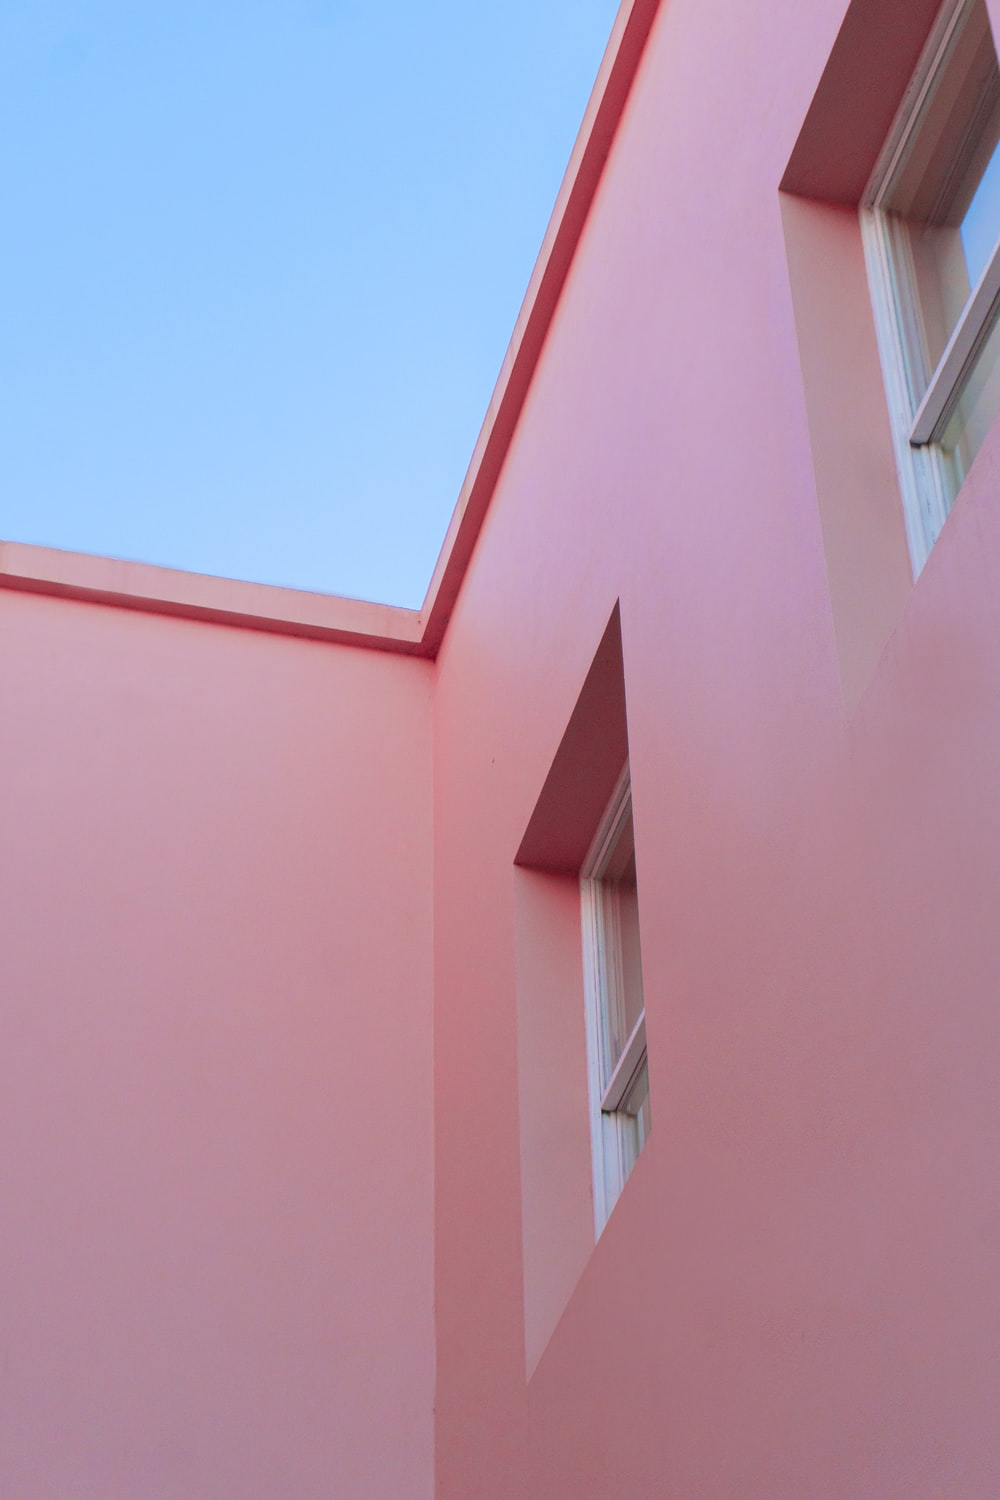 pink concrete building under blue sky during daytime